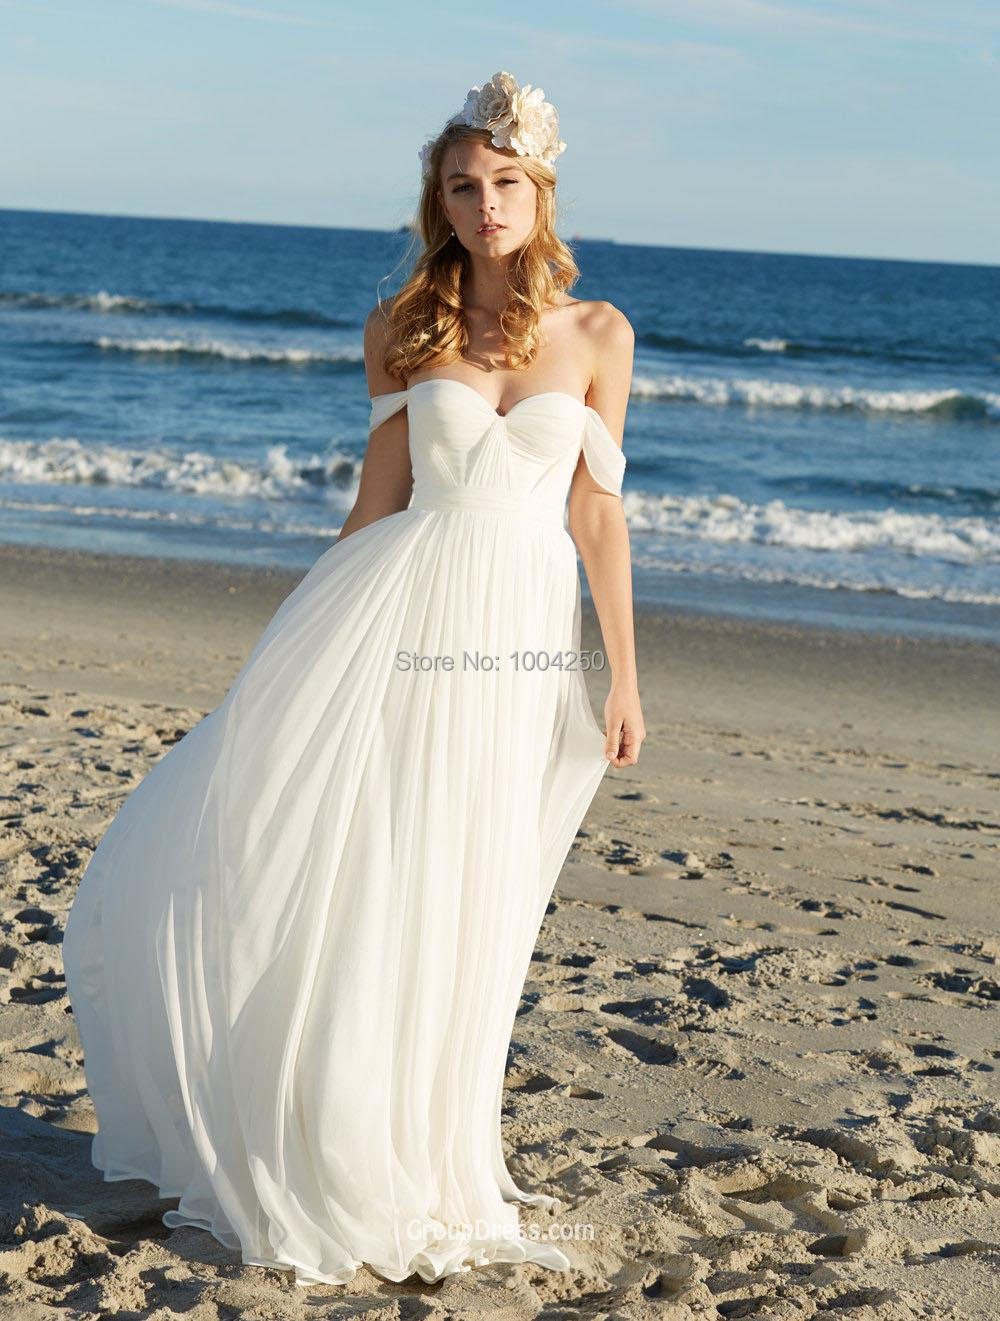 Dreses For Beach Weding 02 - Dreses For Beach Weding